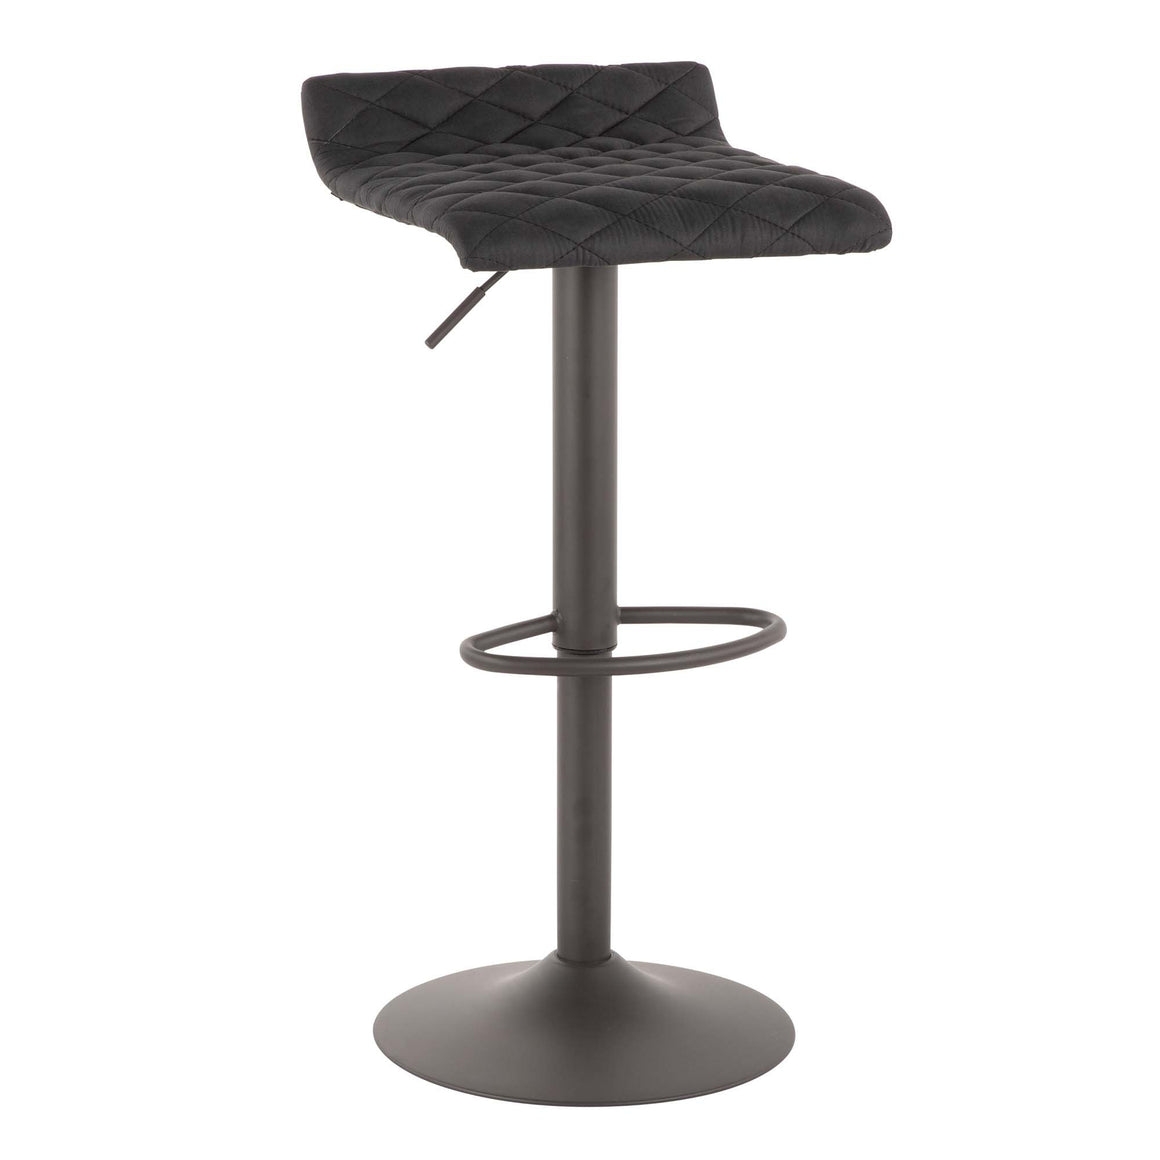 Cavale Industrial Barstool in Matte Grey and Black Cowboy Fabric by LumiSource